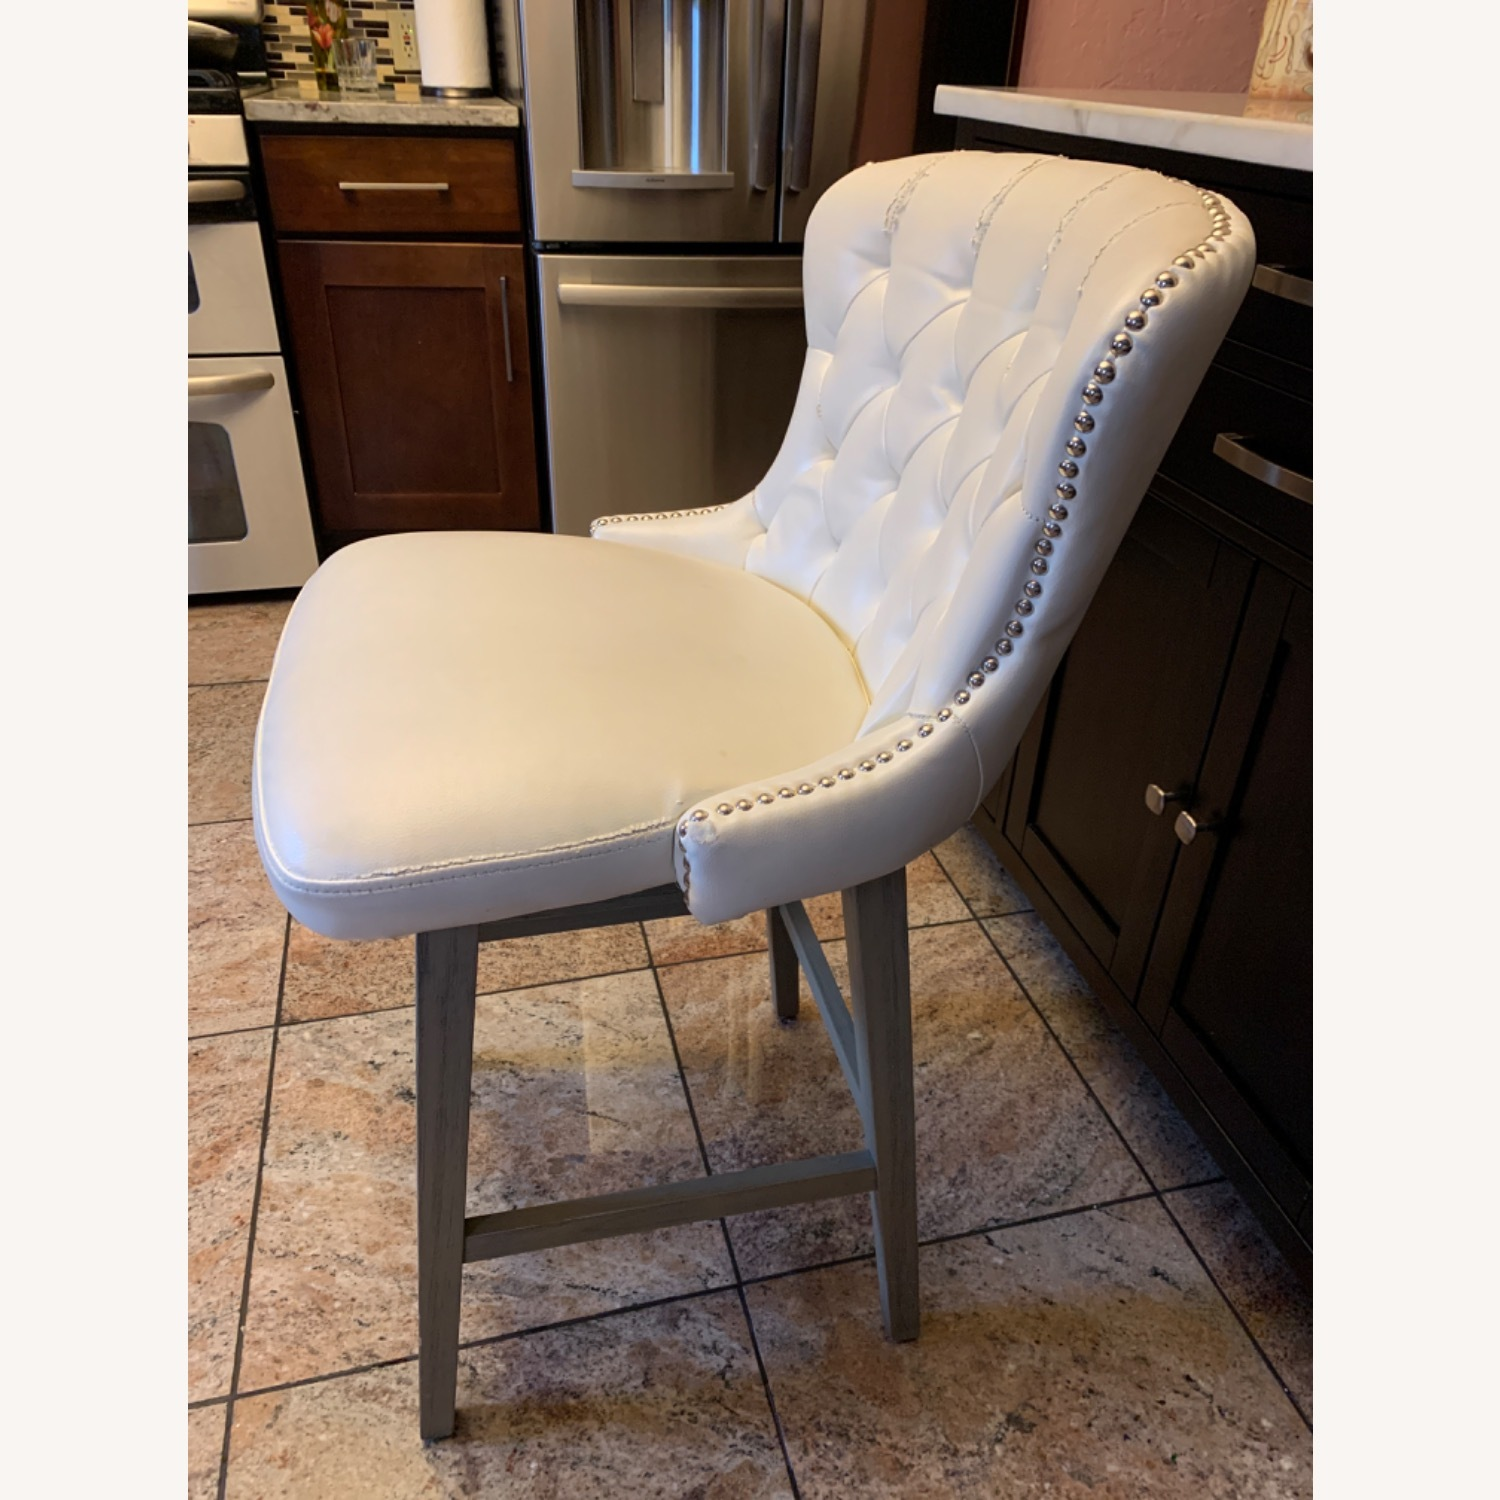 White Faux Leather Tufted Counter Chairs - image-3